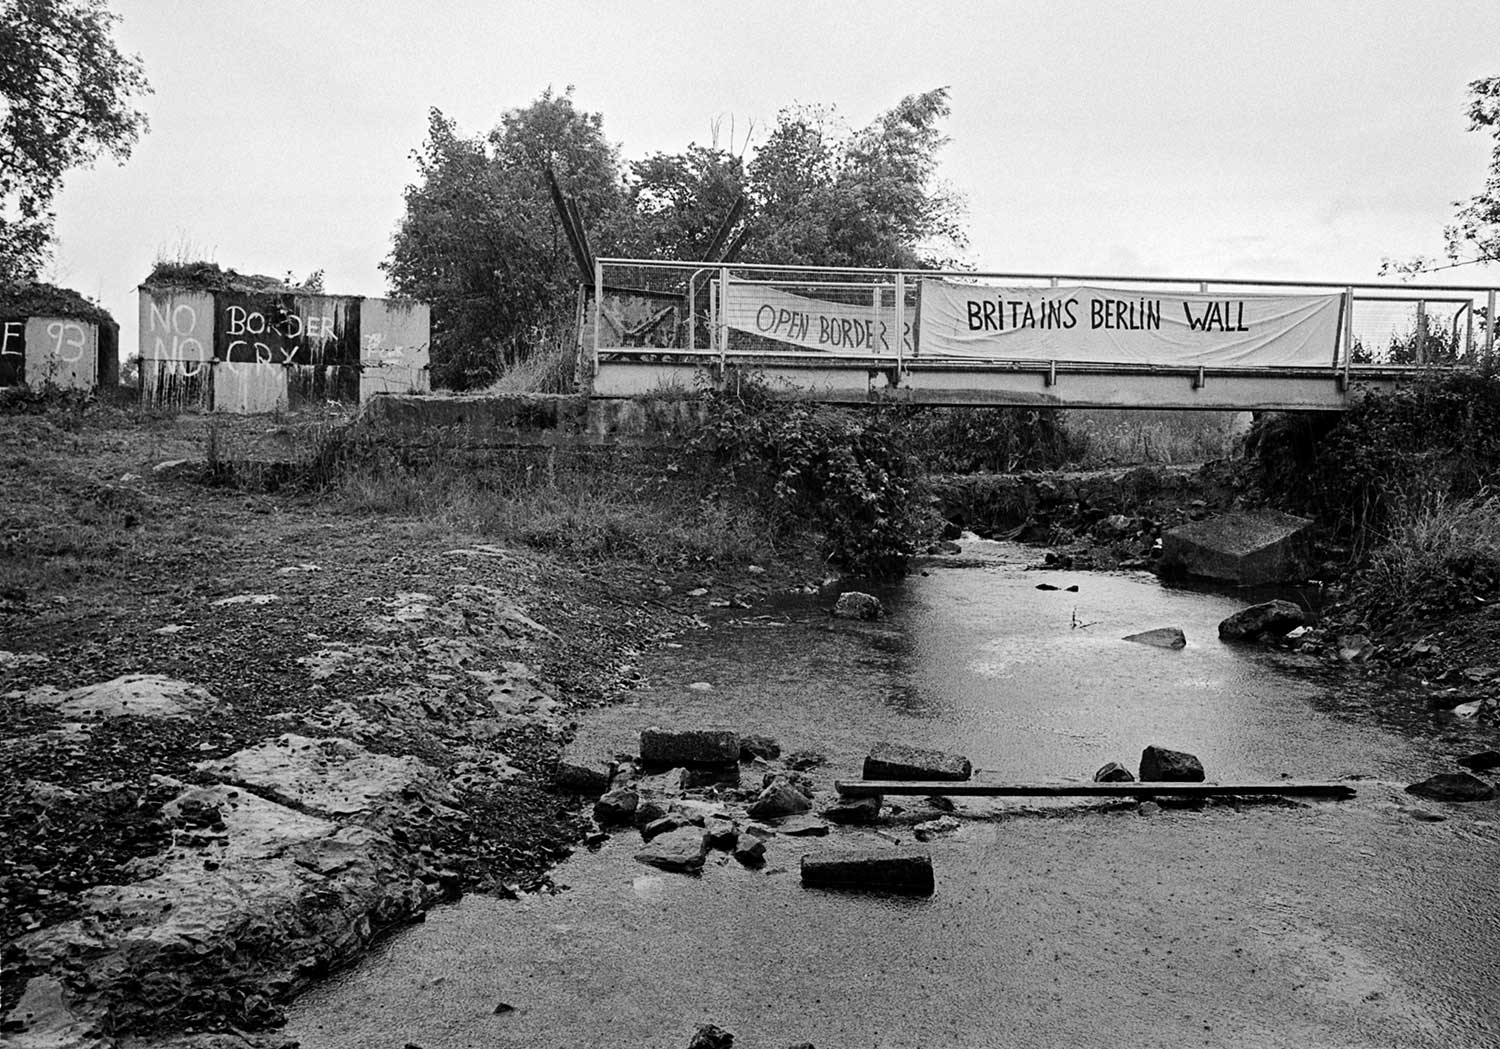 A small makeshift rusty bridge crosses a stream. Banners saying Britain's Berlin Wall and open border hang from the bridge.